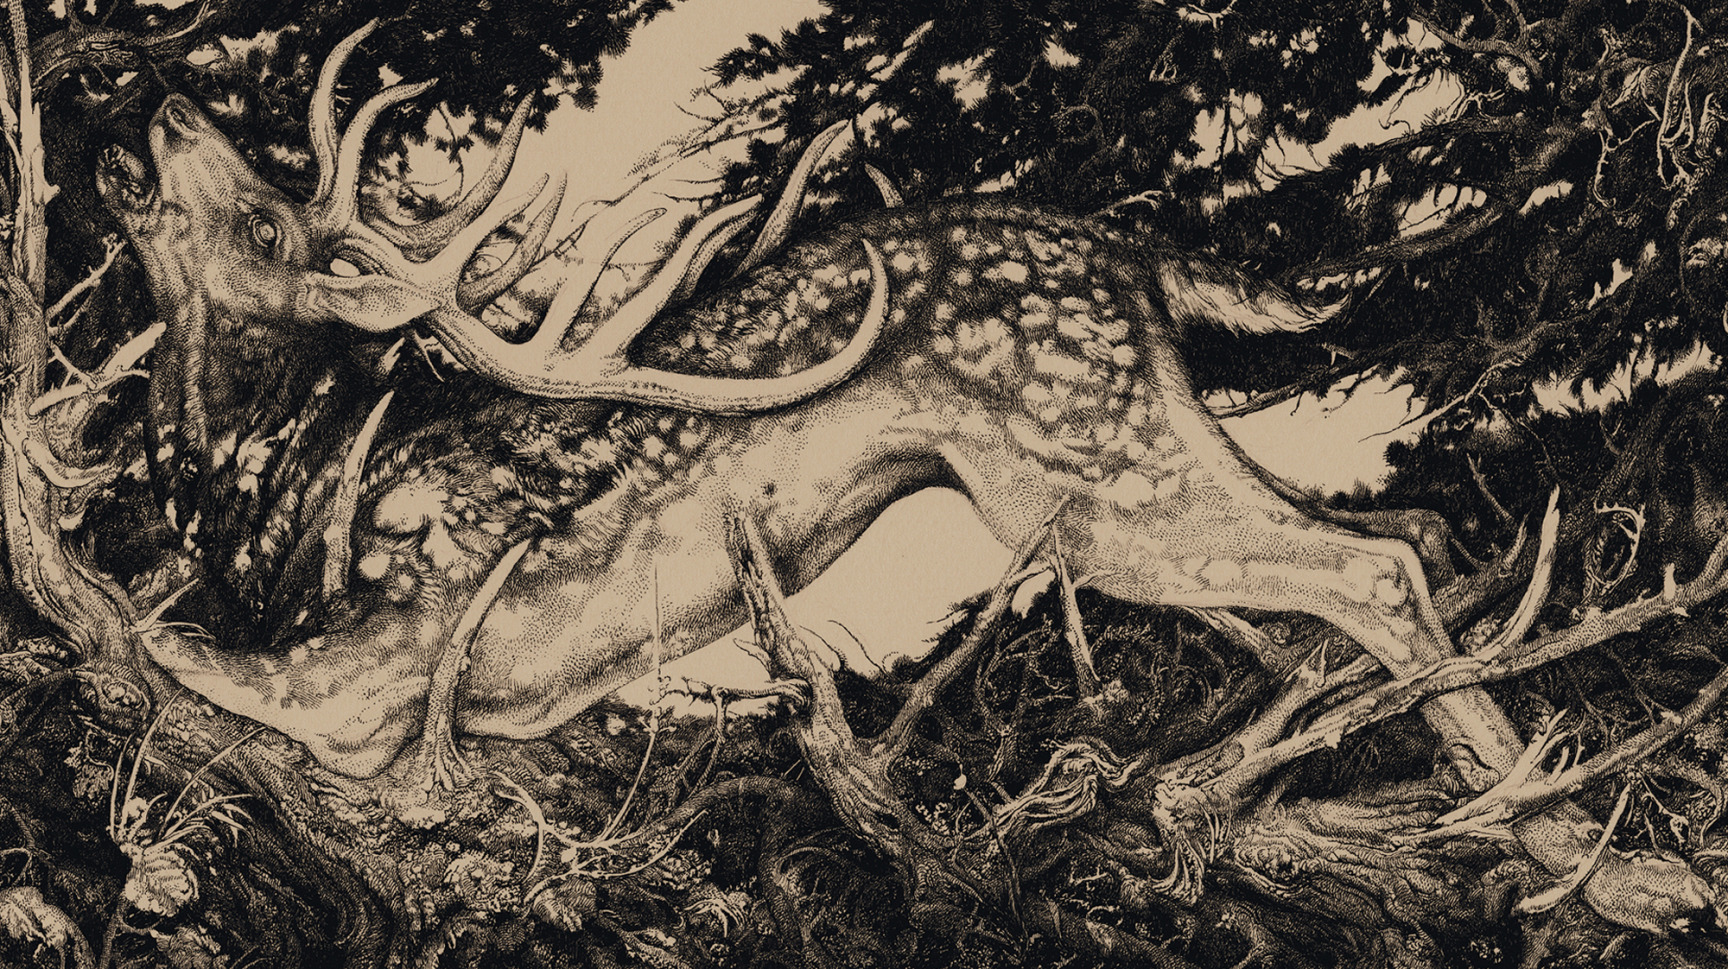 Vania Zouravliov<br /><strong>Moist Stag</strong>